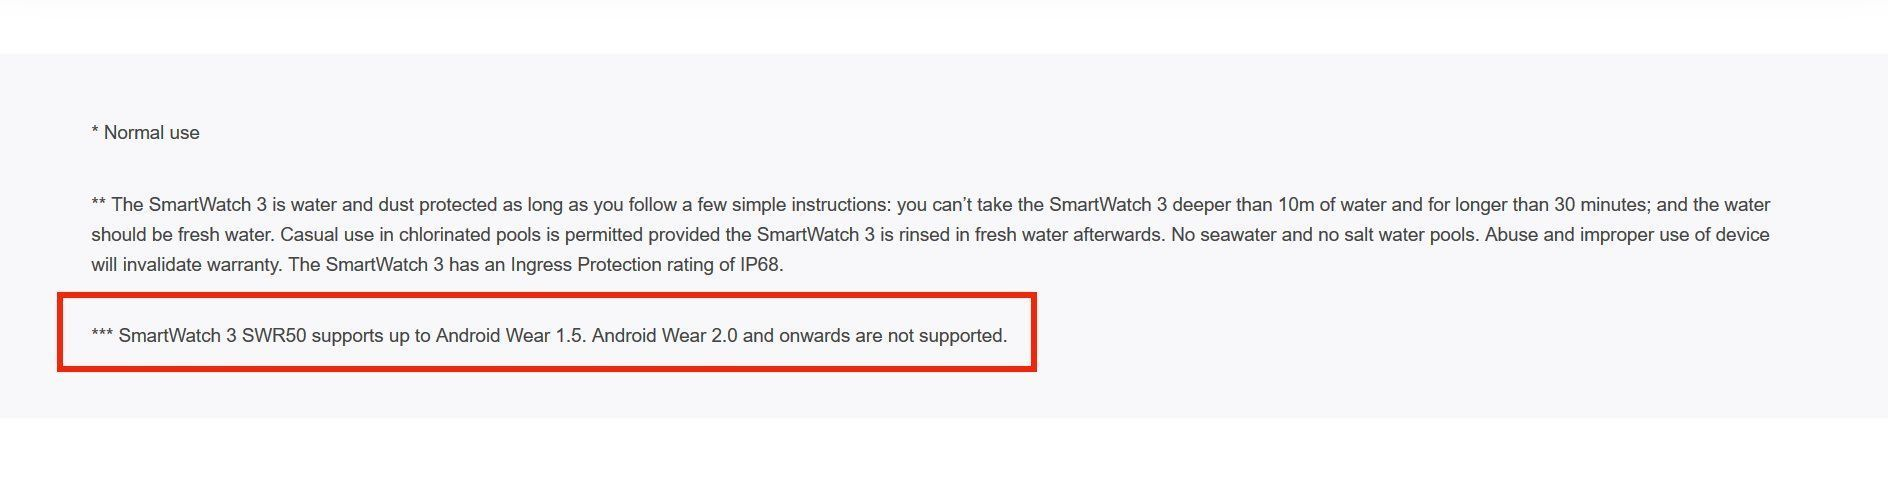 Sony Smartwatch 3 - Product Page Notes On Android Wear Support